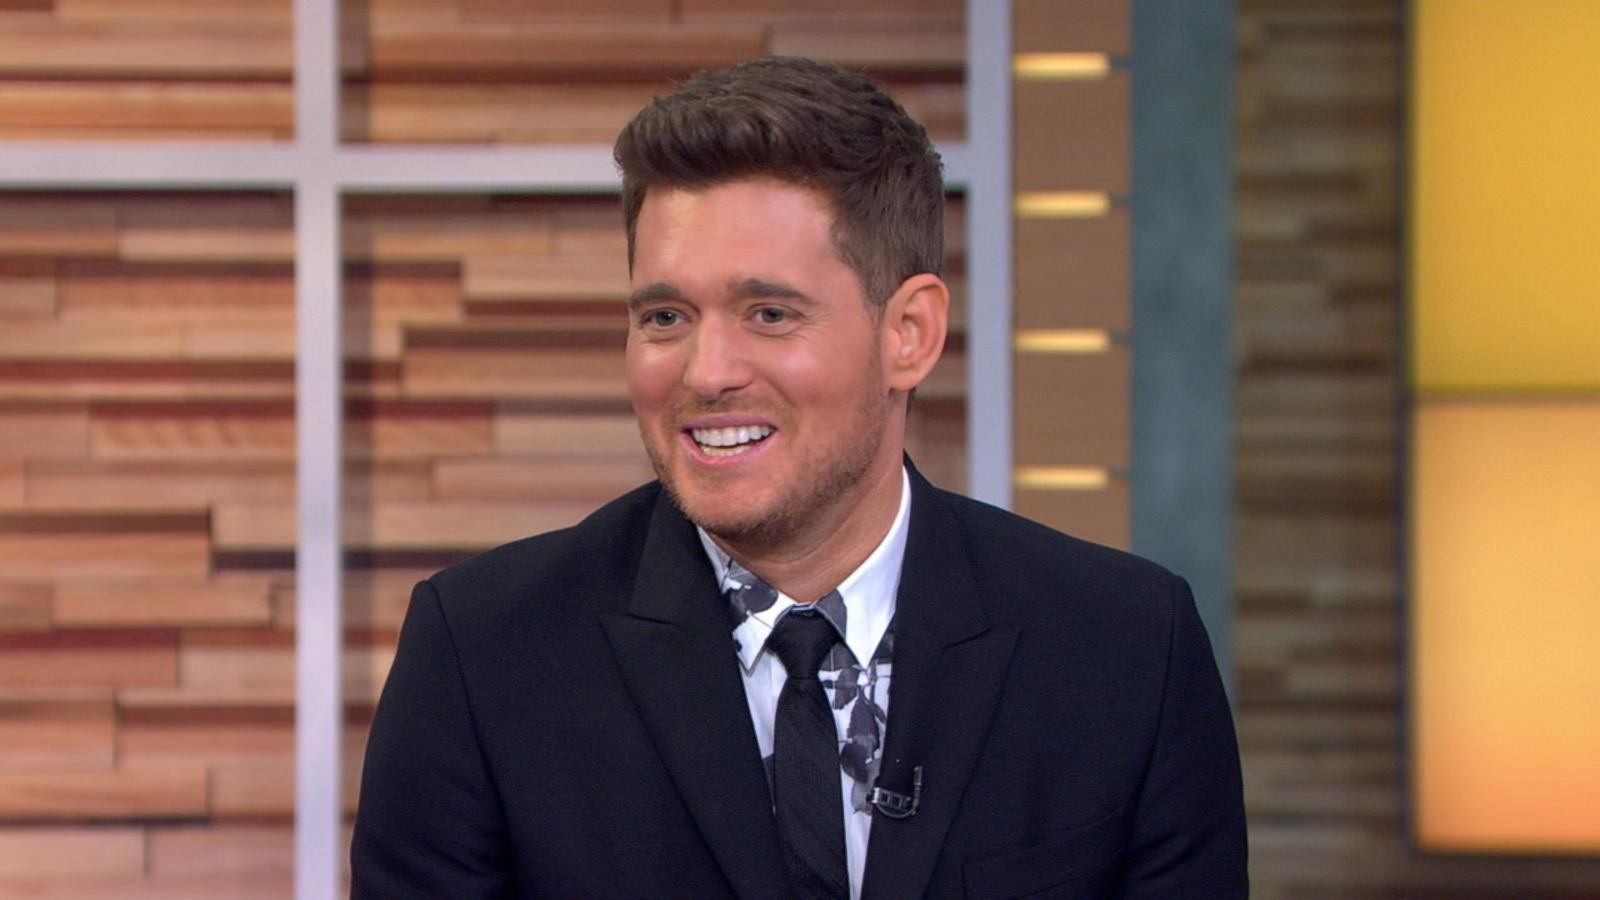 VIDEO: Michael Buble Visits 'GMA'